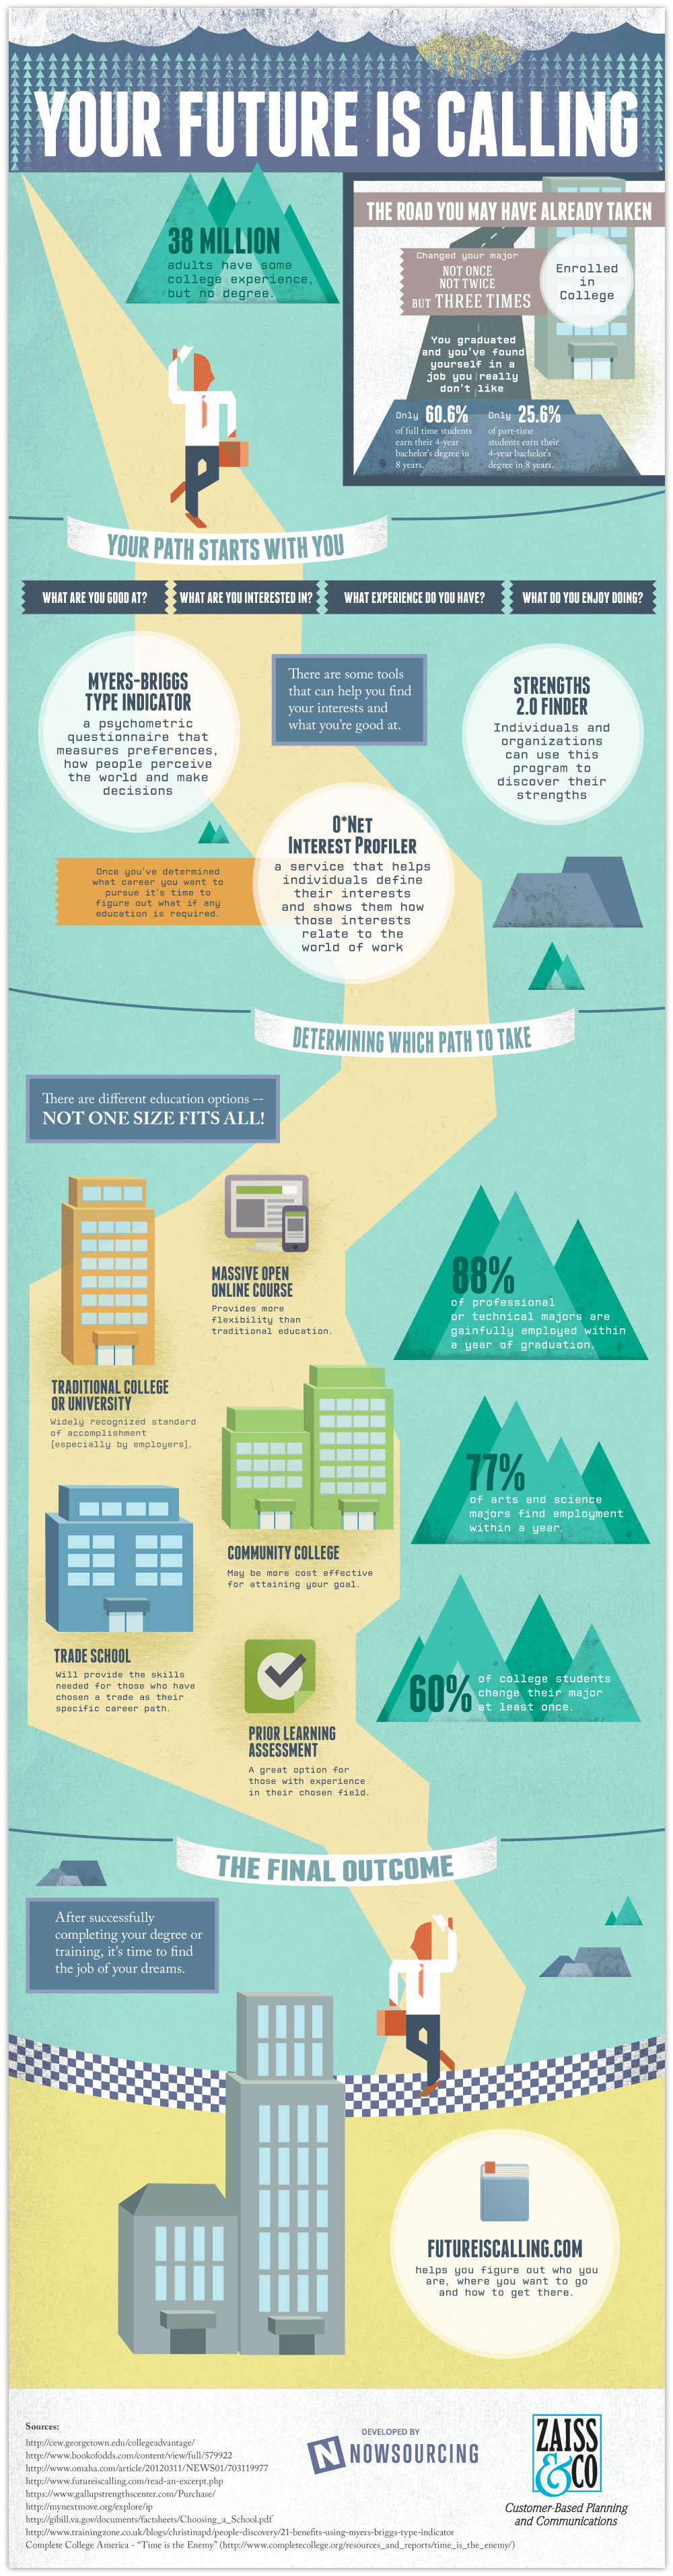 New College Perspective That Makes It Worth The Cost [Infographic]